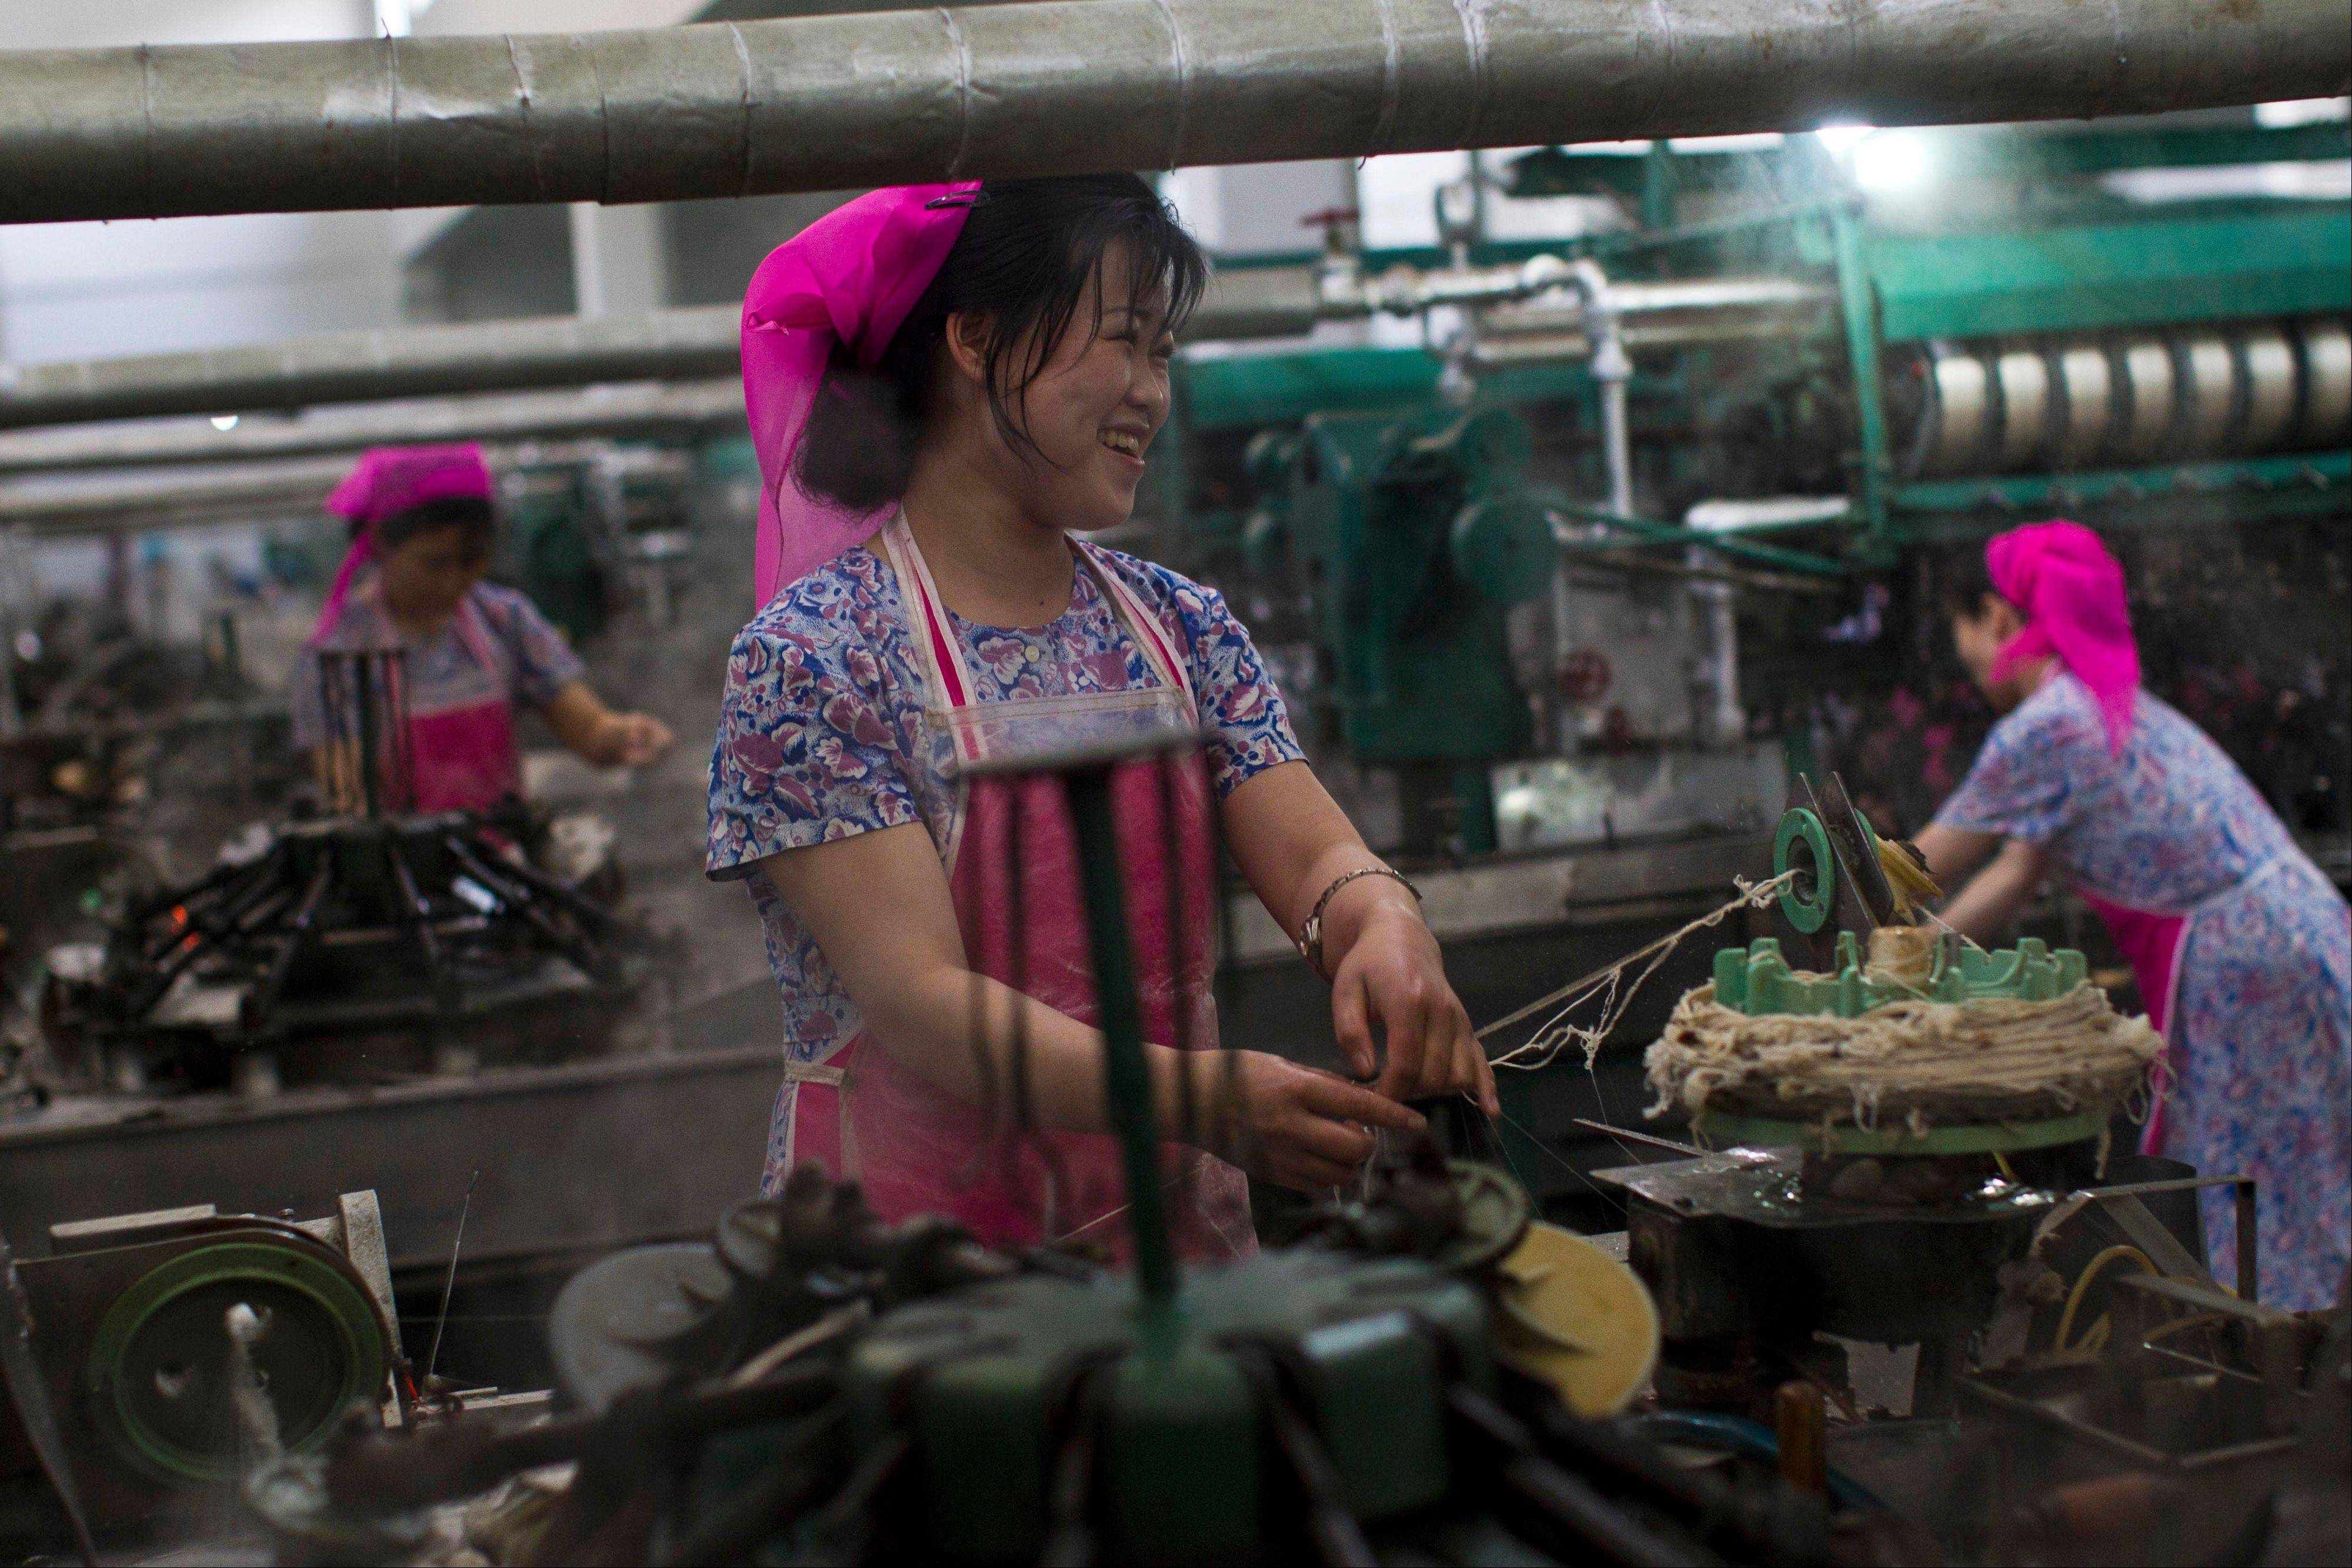 In this Monday, April 9, 2012 photo, North Korean women work in a thread factory in Pyongyang, North Korea. A North Korean economist said that the government introduced new economic management methods in April 2013 that relax state control of workers' salaries.